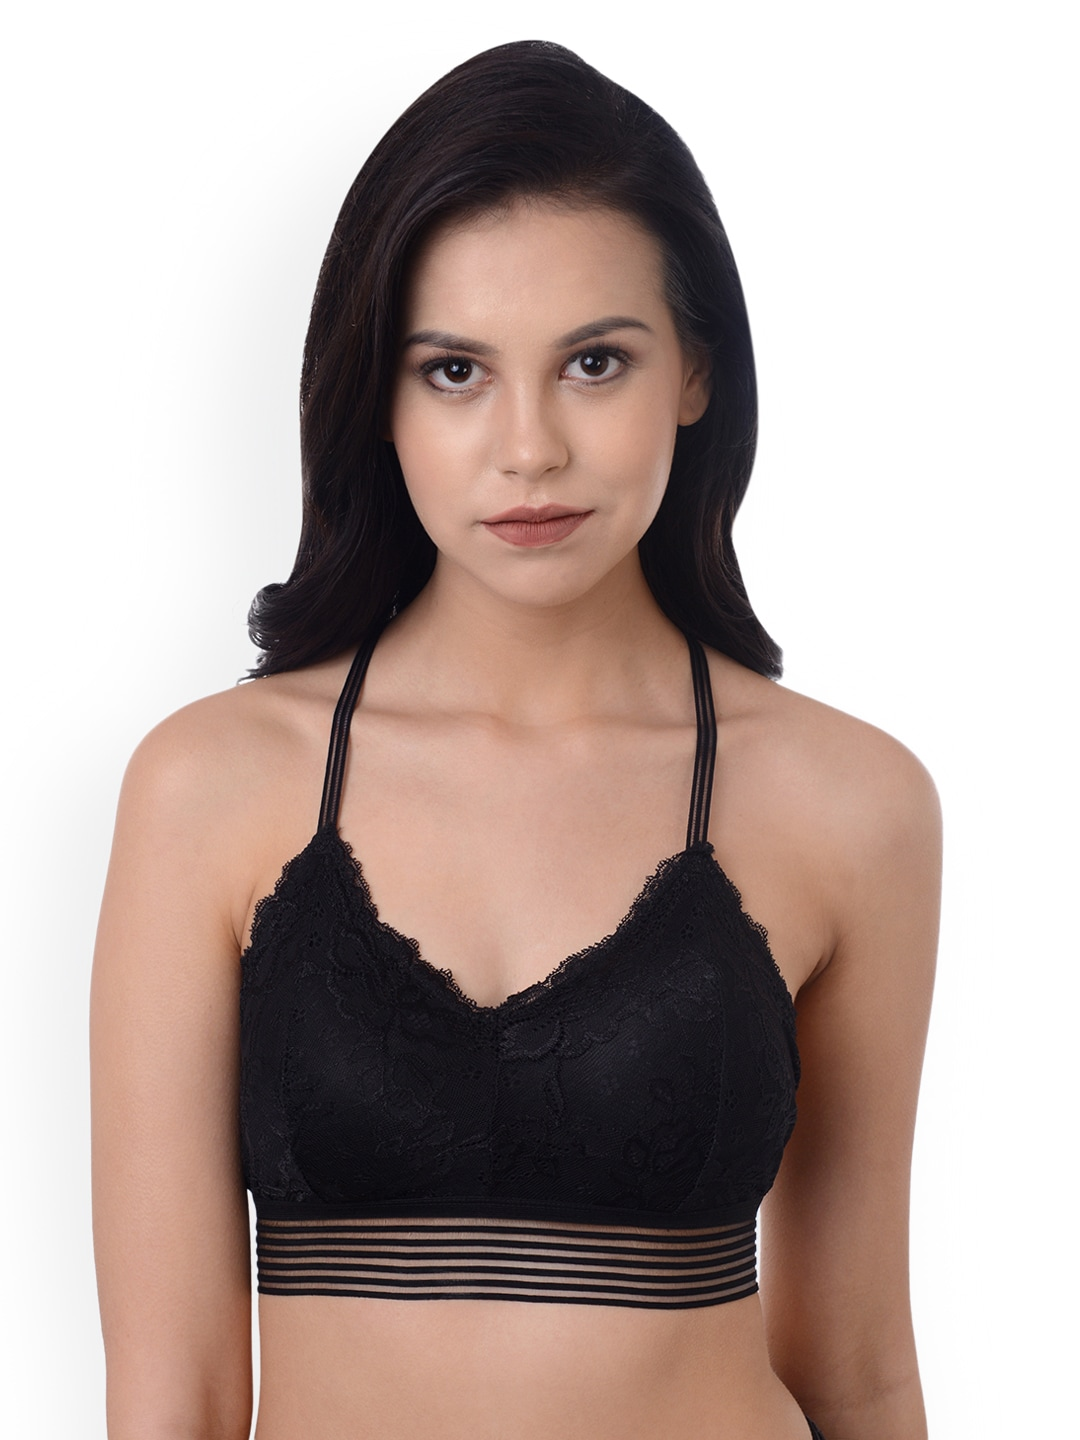 9d3f7dd377e Bralette - Buy Stylish Bralettes online at best prices in India